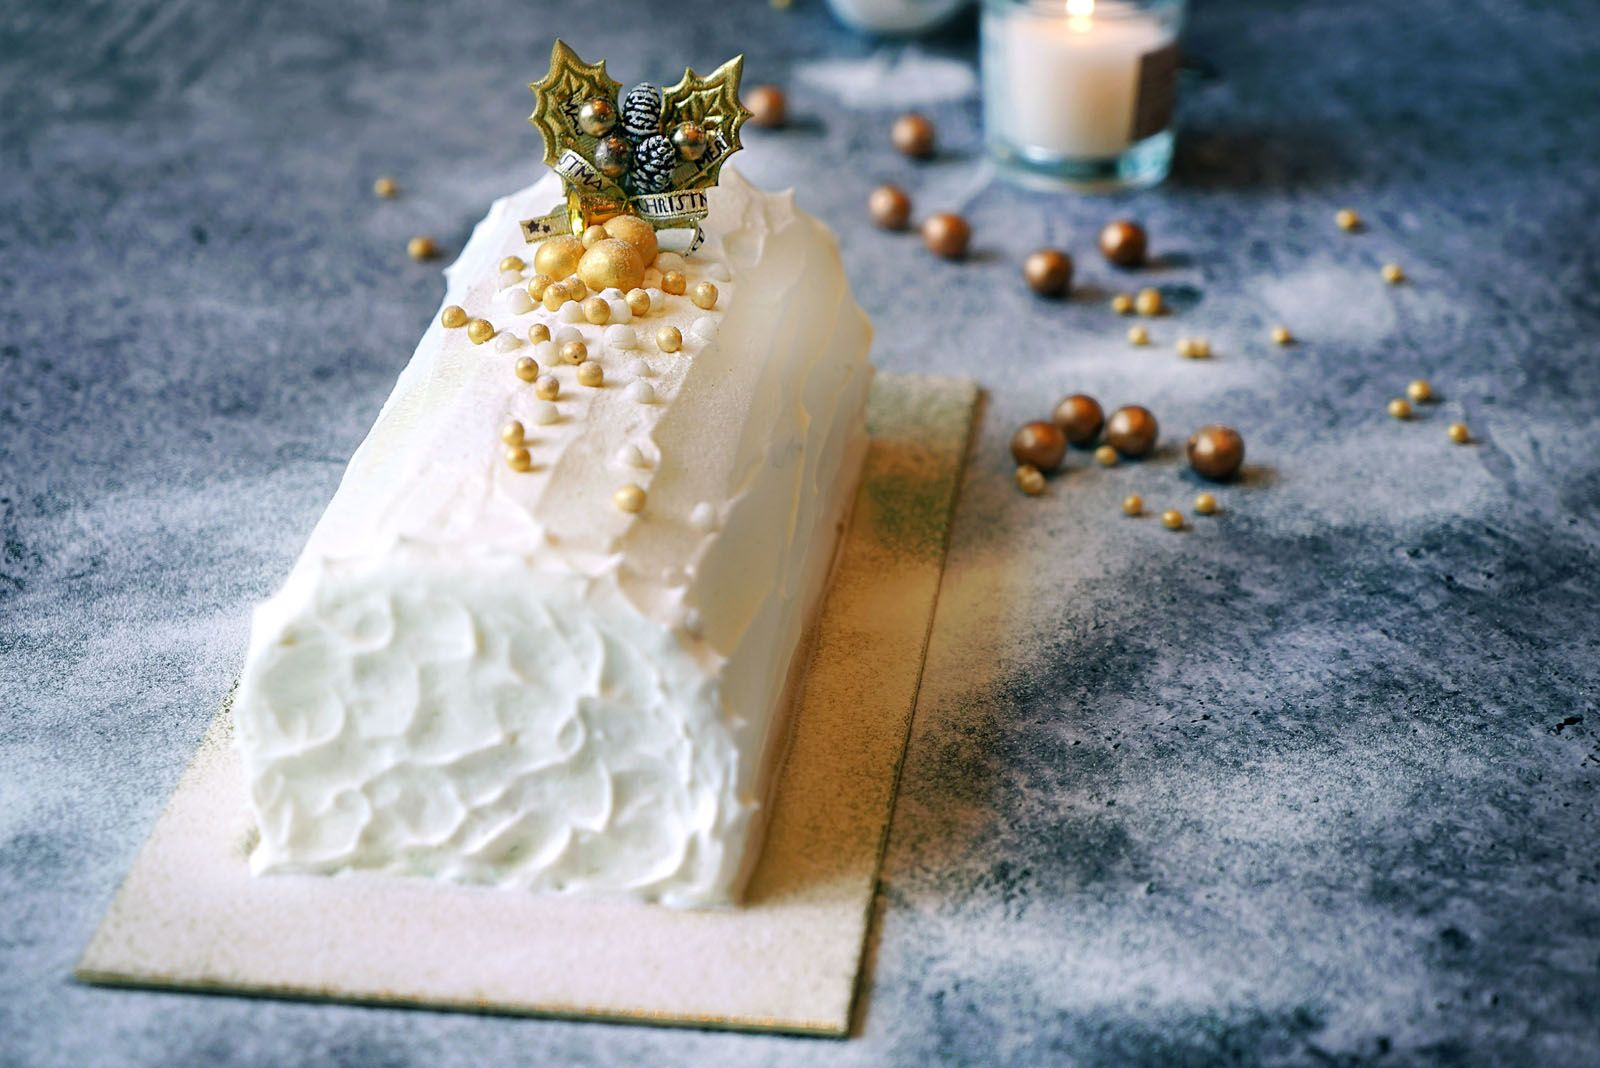 Christmas 2020: The Best Log Cakes For Your Festive Feast